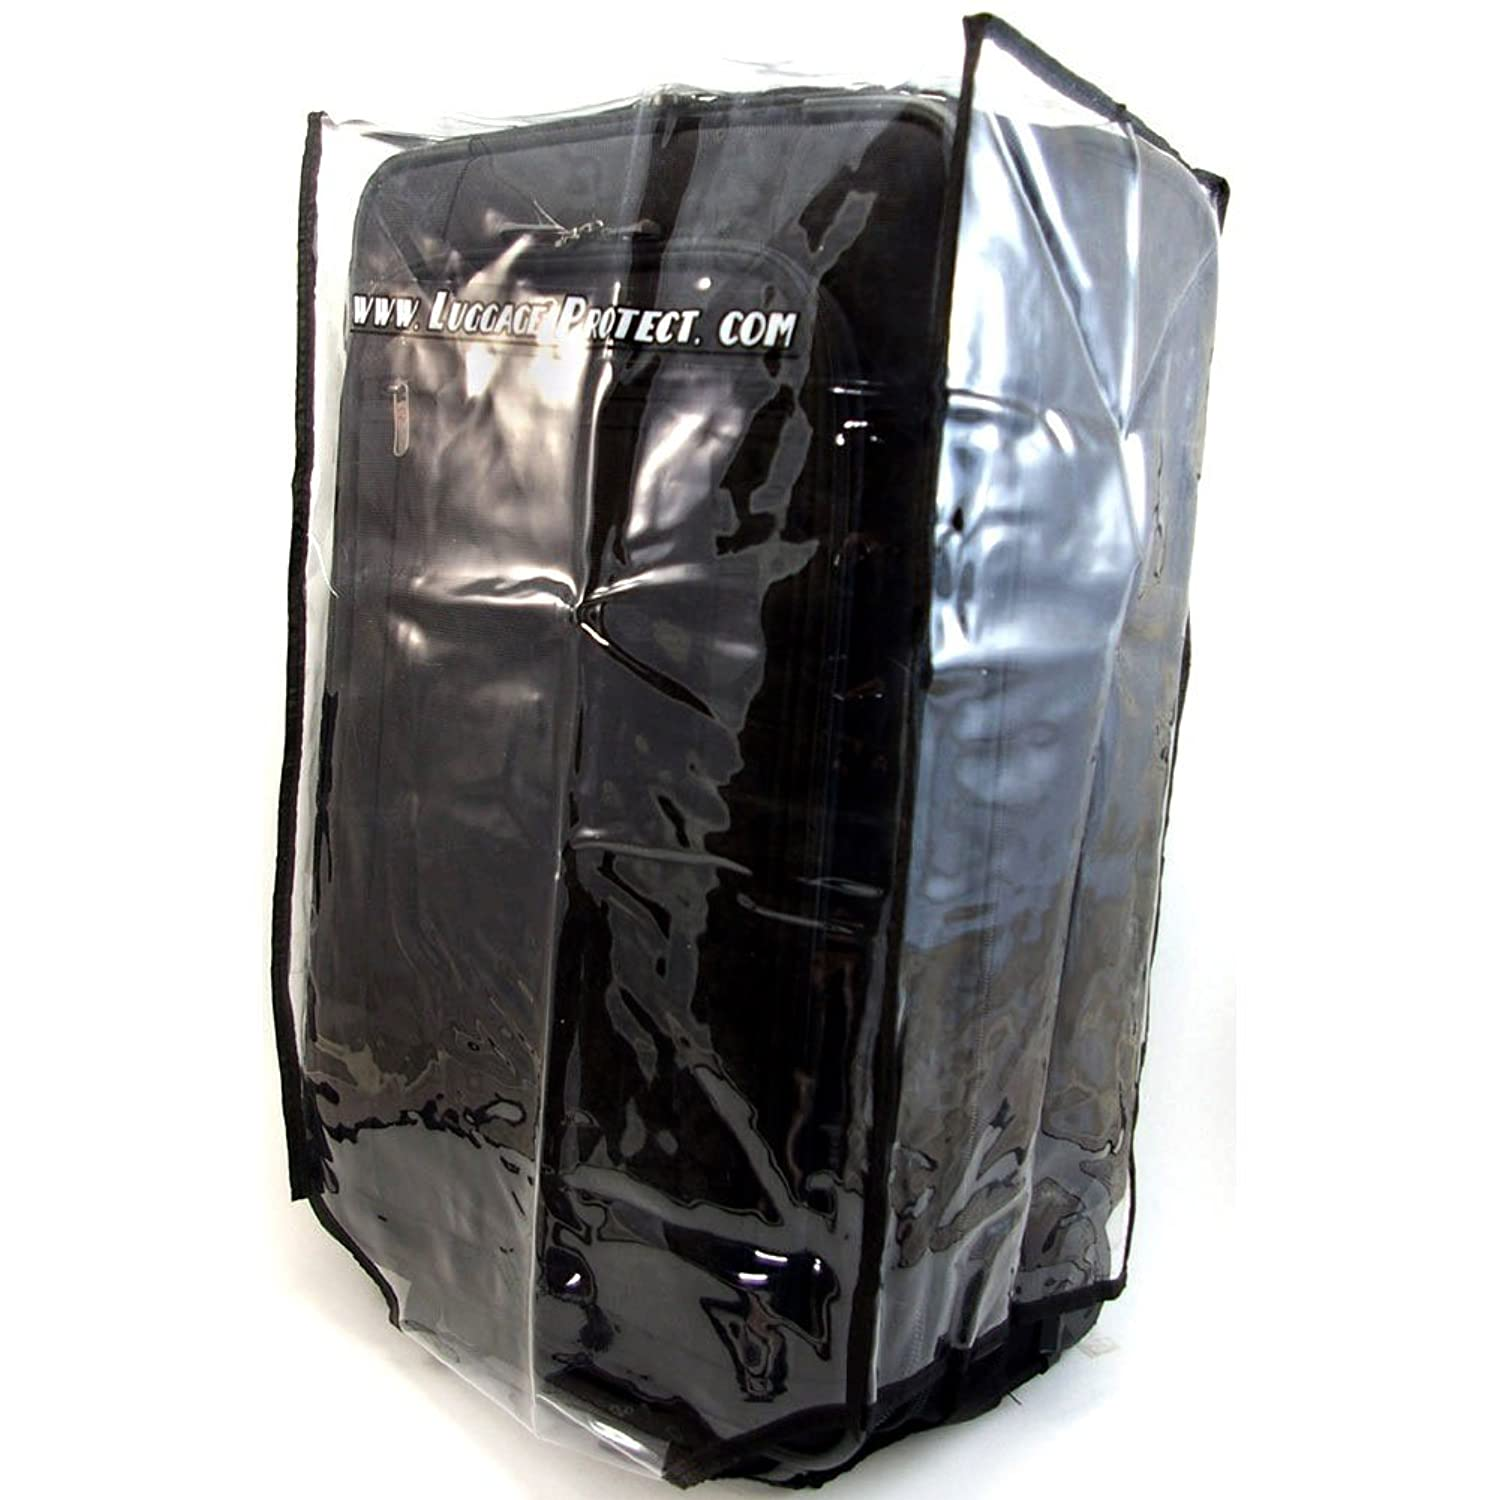 Amazon.com | Luggage Protect Luggage Covers | Travel Accessories